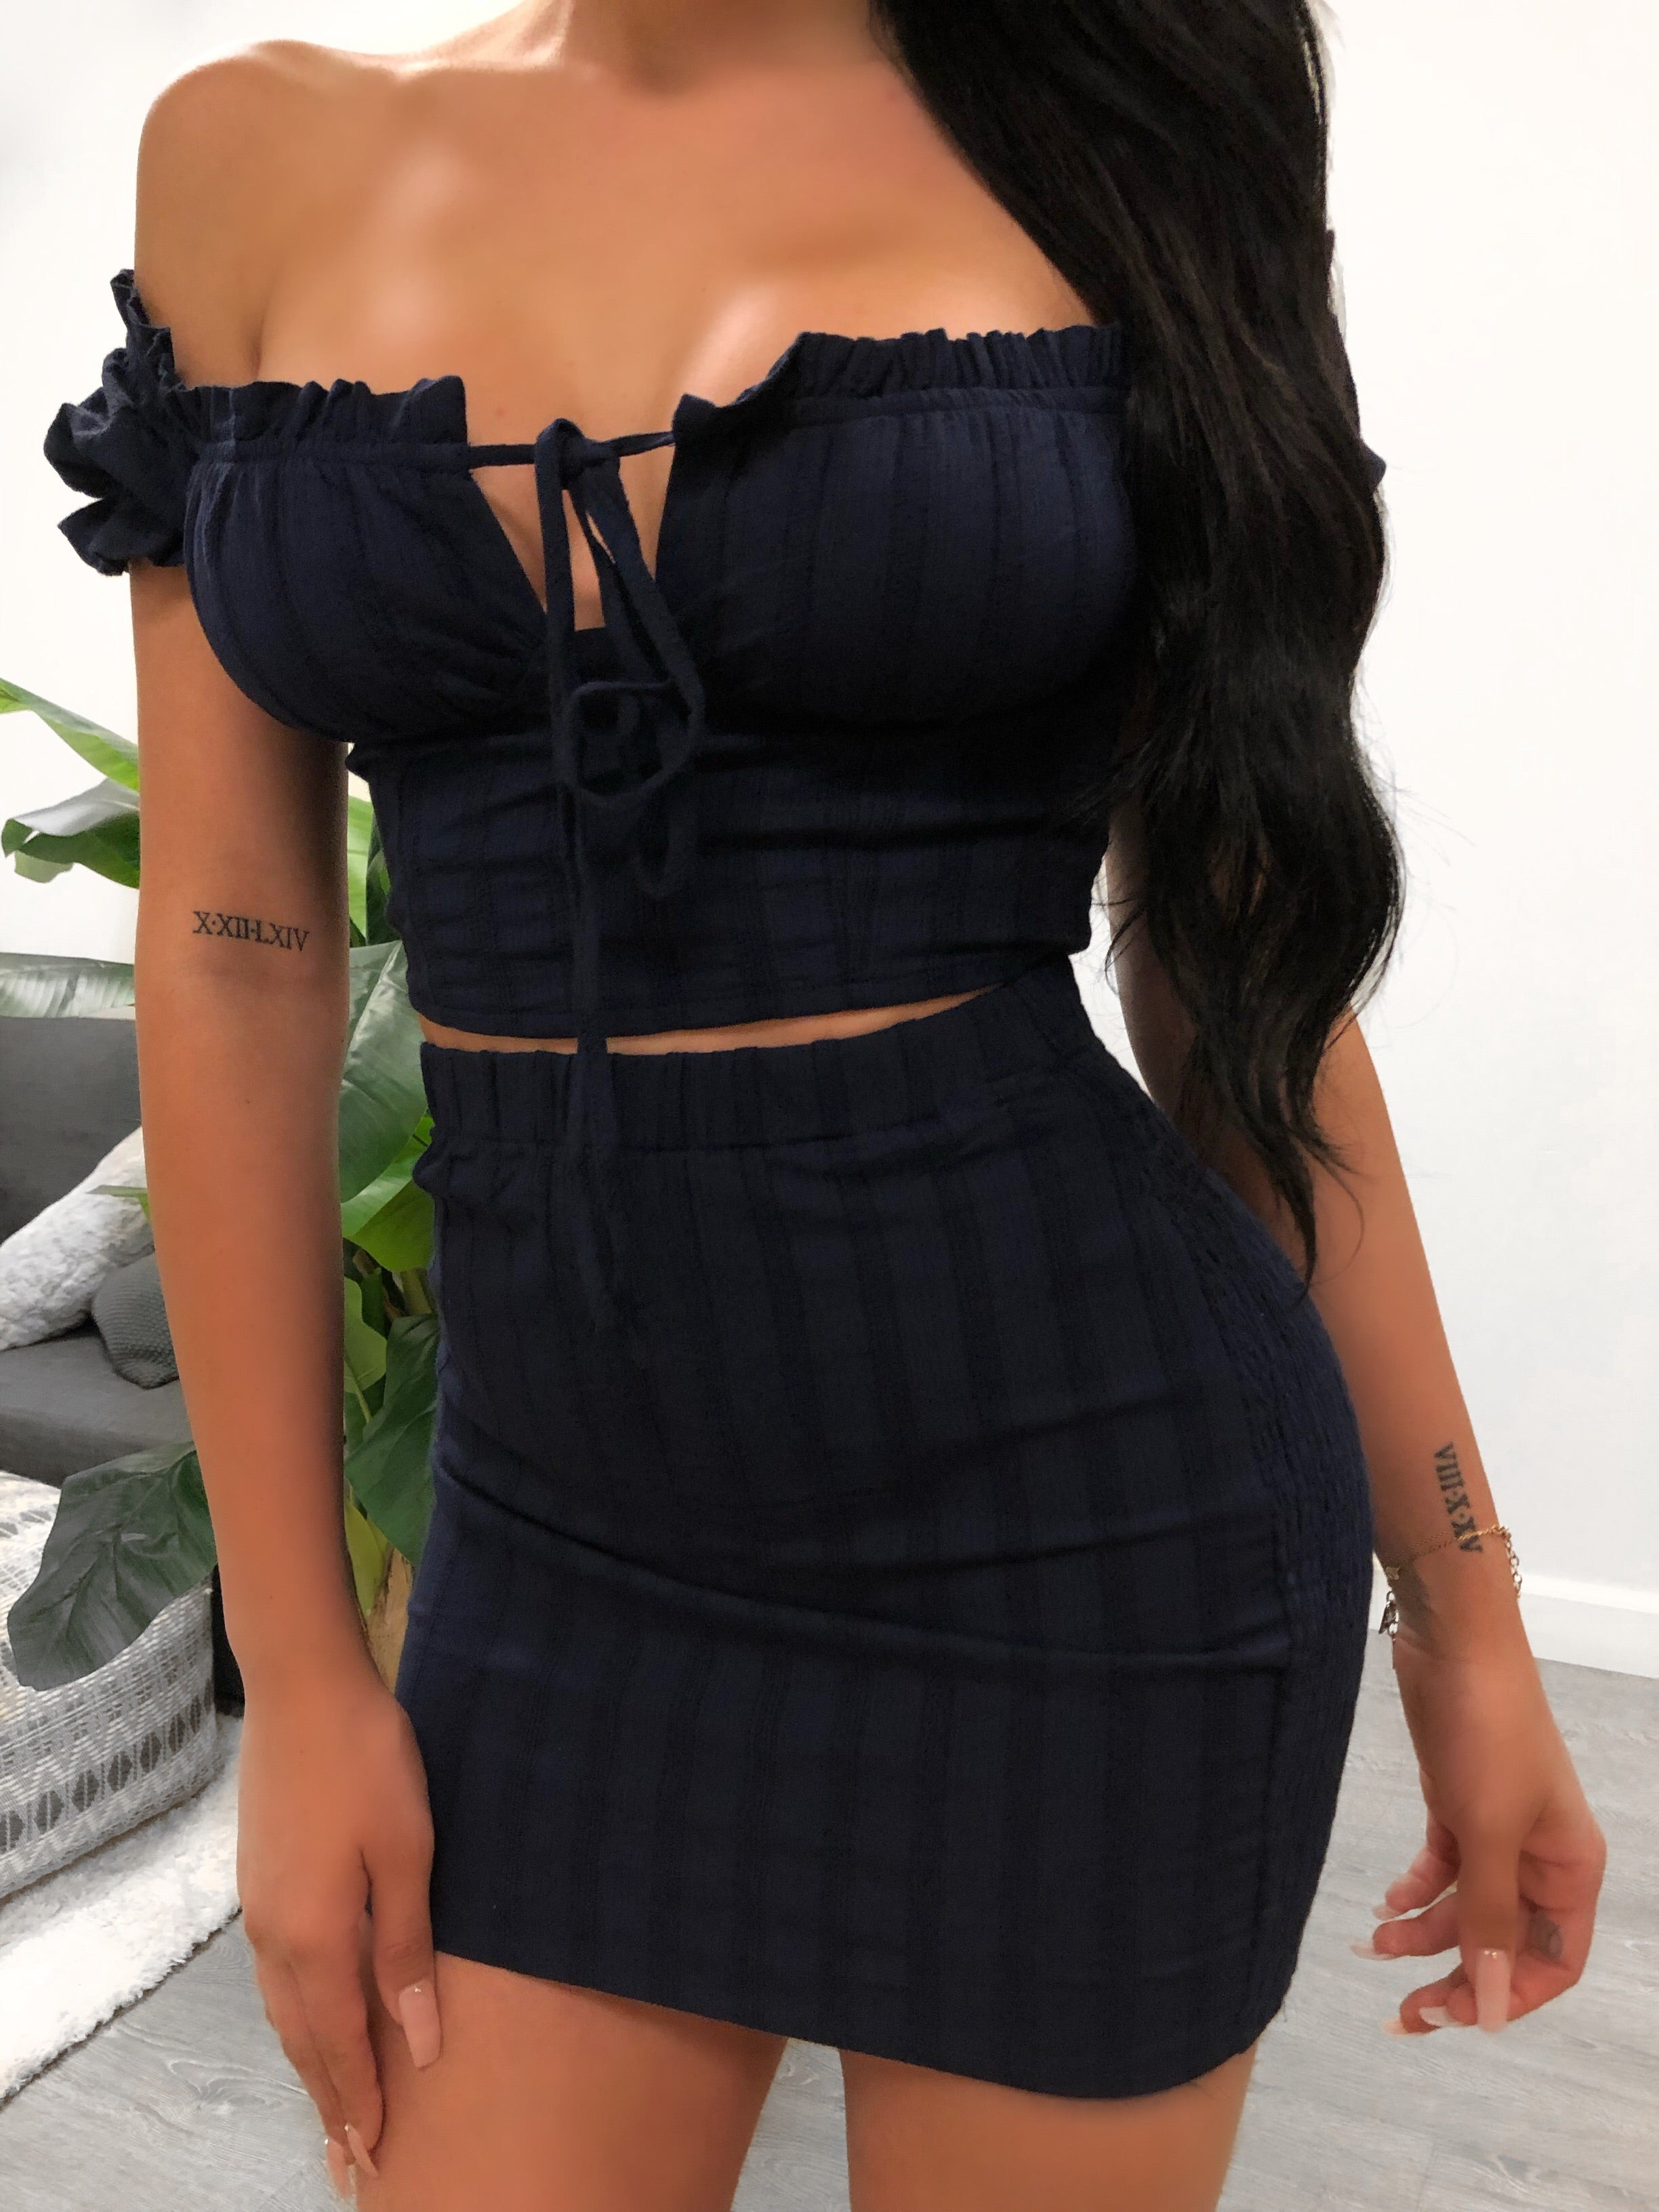 Navy blue two piece, navy blue off the shoulder top, ruffled tie top, crop tie top, navy blue mini skirt, mid thigh length